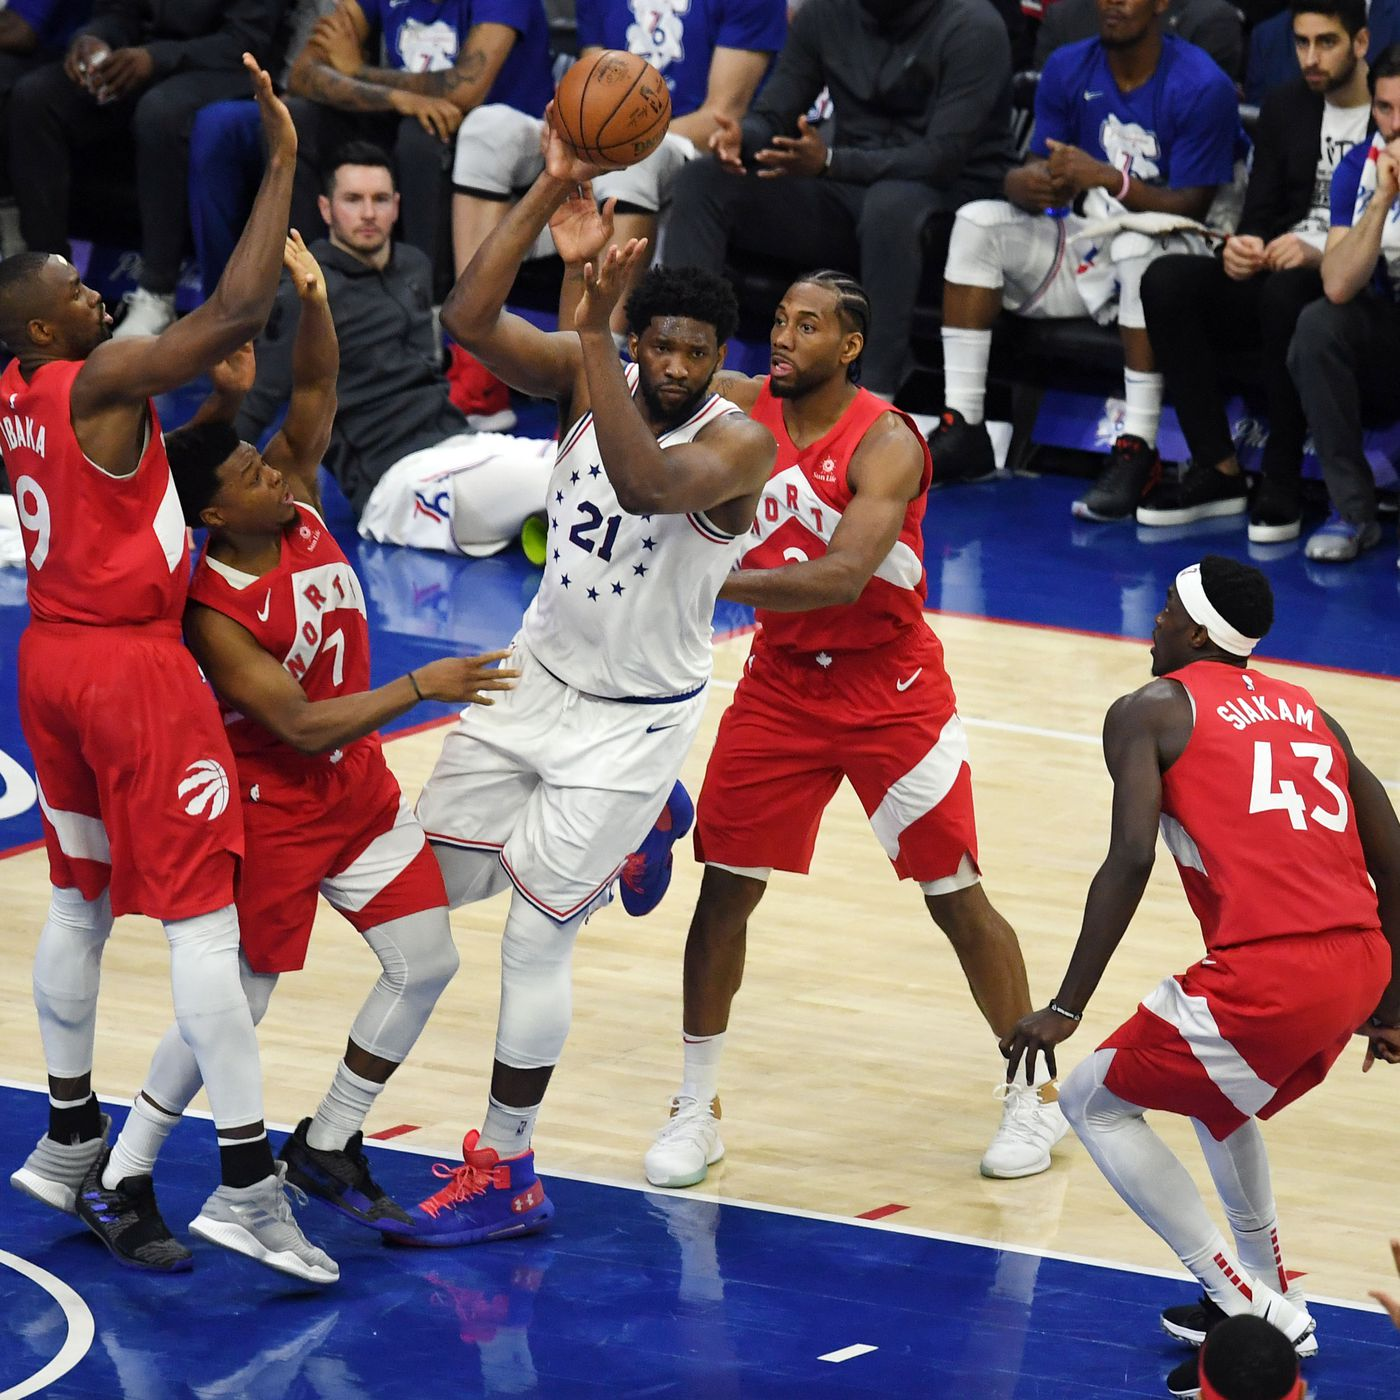 Nba betting line game 7 greatwood hurdle betting websites